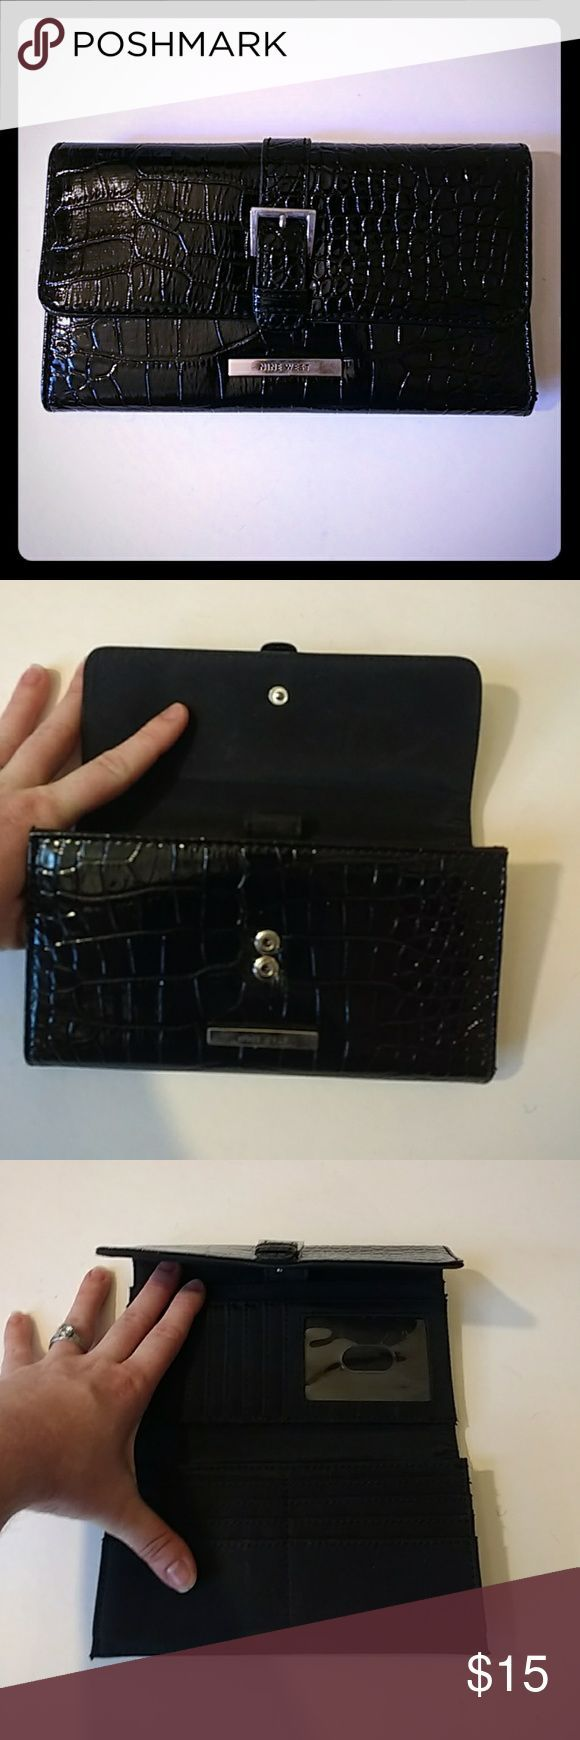 NWOT Nine West Faux Alligator Skin Long Wallet This is a brand new Nine West wallet that features a black faux-leather with an alligator-like print. It features a myriad of pockets as card slots. I never used it because I honestly forgot I had it. Comment with questions! Nine West Bags Wallets